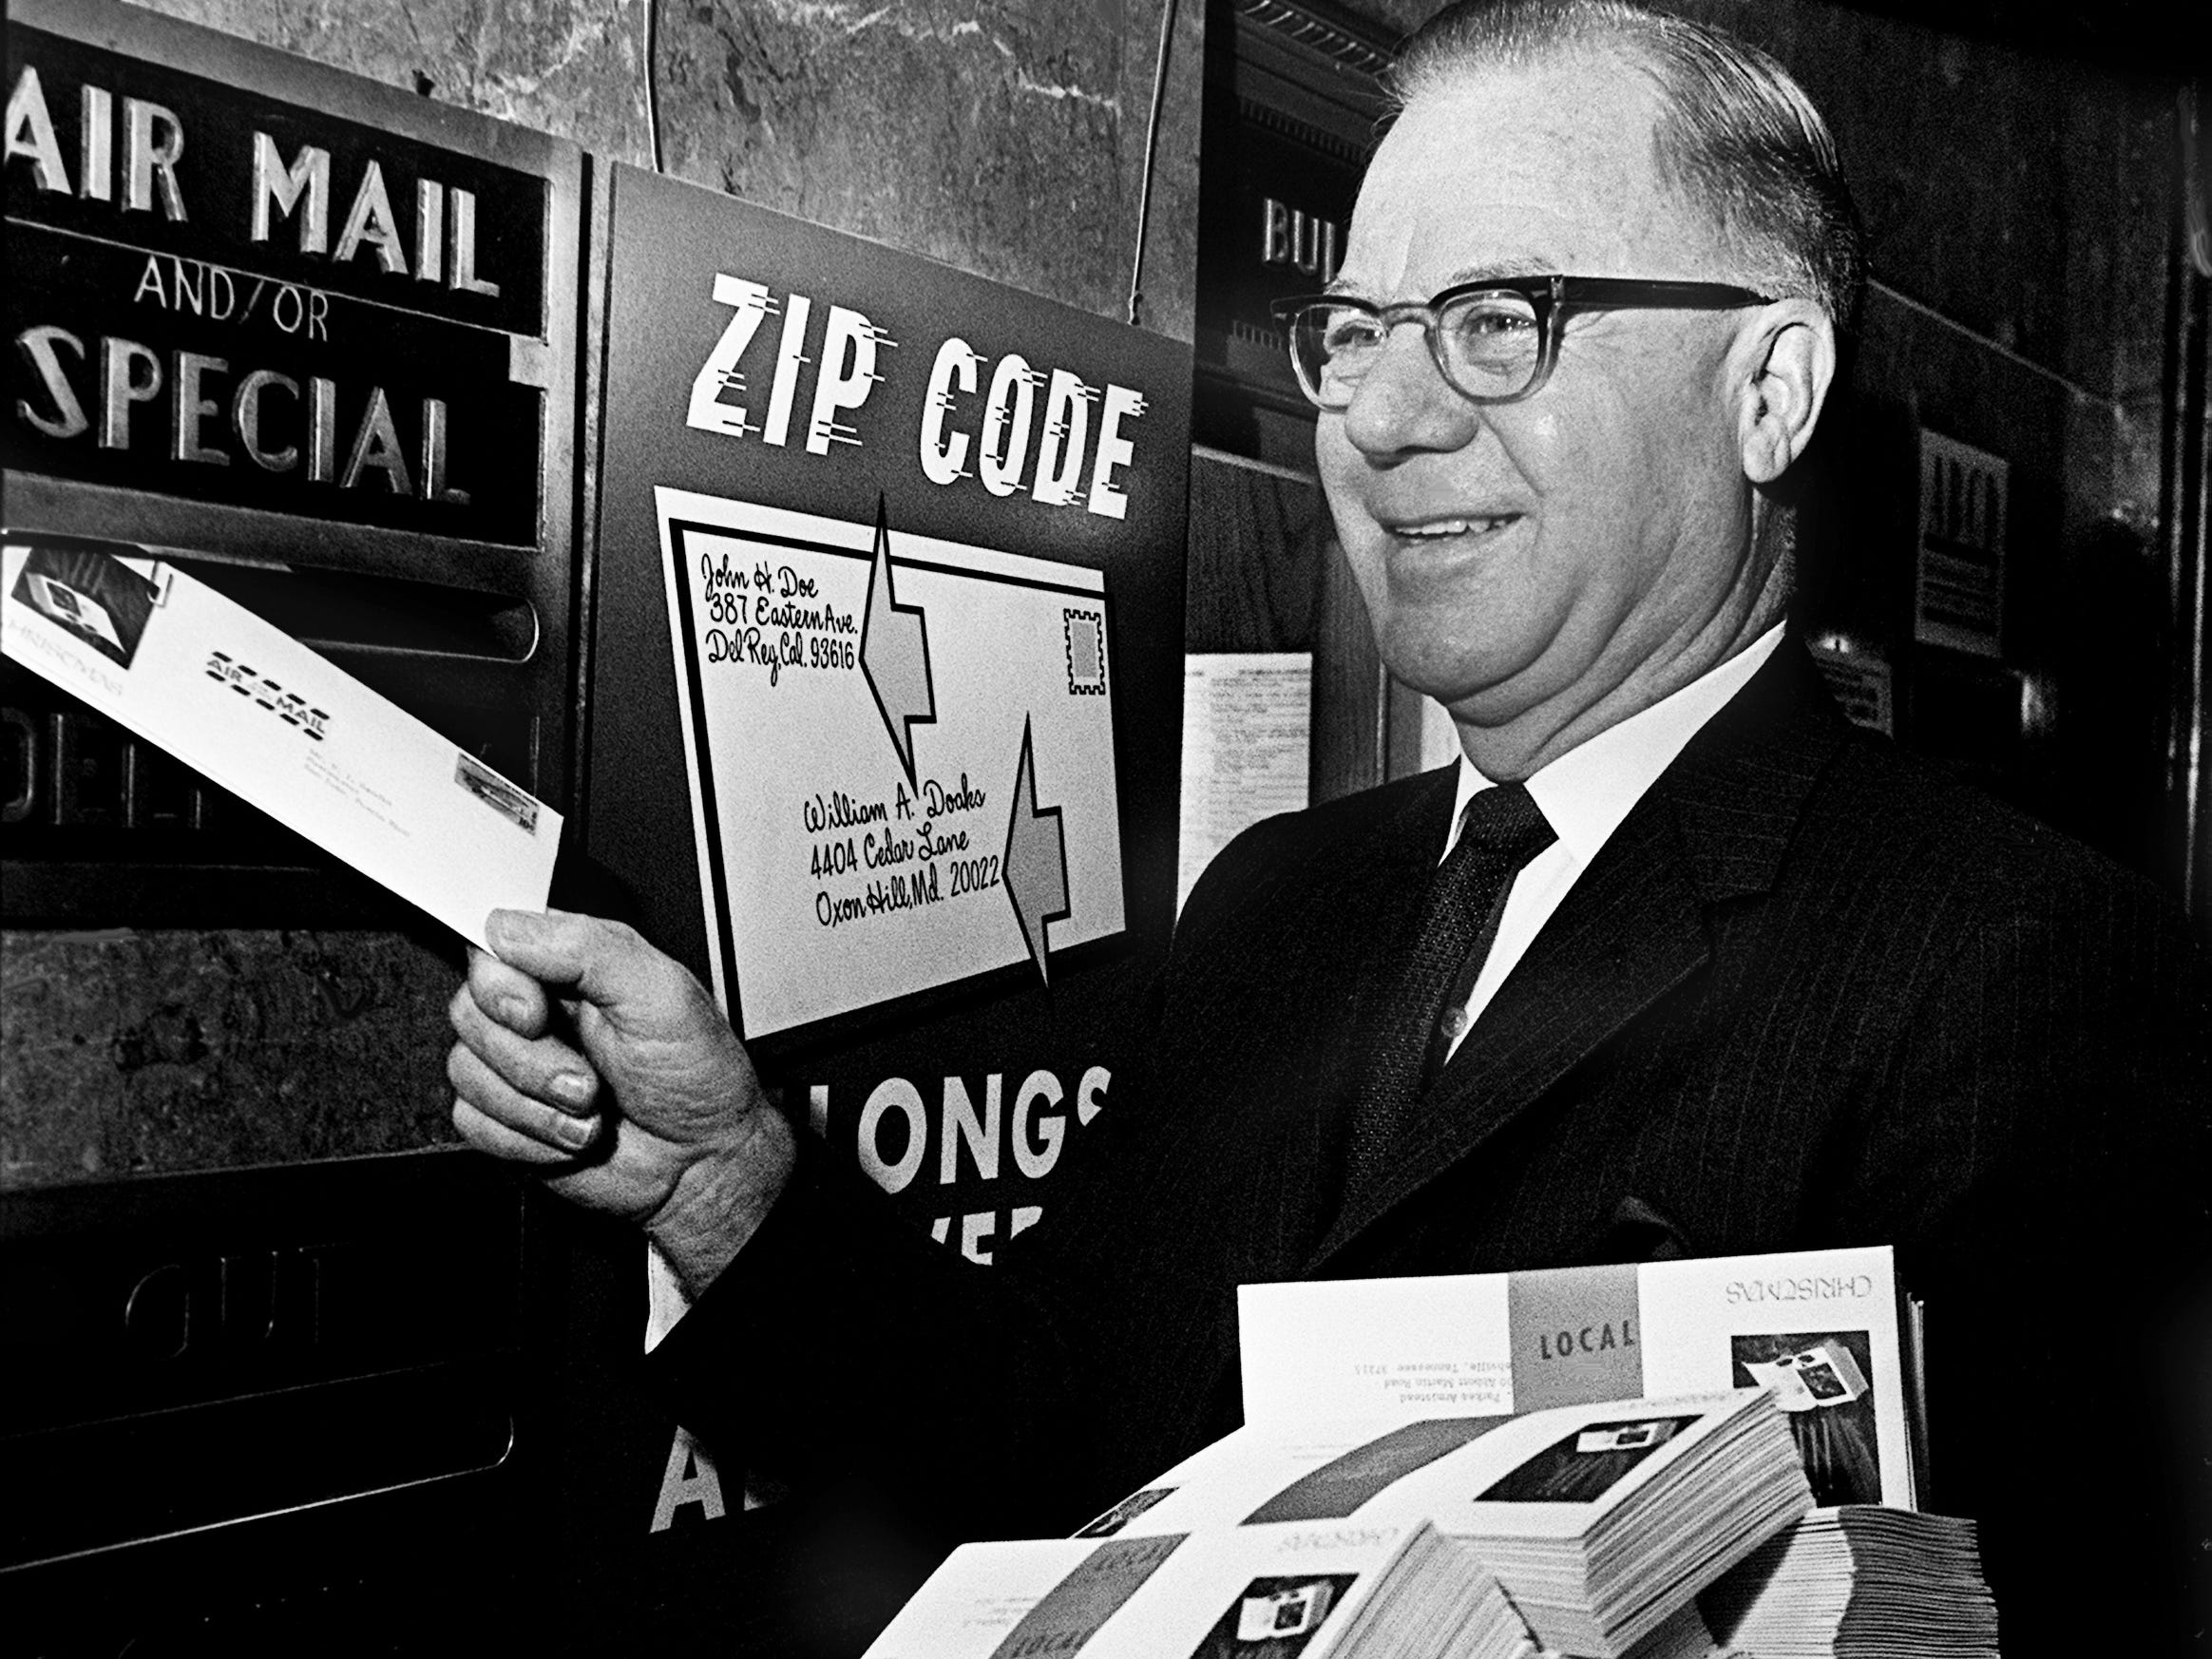 Nashville Postmaster Lewis Moore practices what he asks patrons to do as he mails his Christmas cards early Nov. 30, 1968. Moore suggest that cards be mailed during the early part of the day to avoid the backlog in the afternoon.